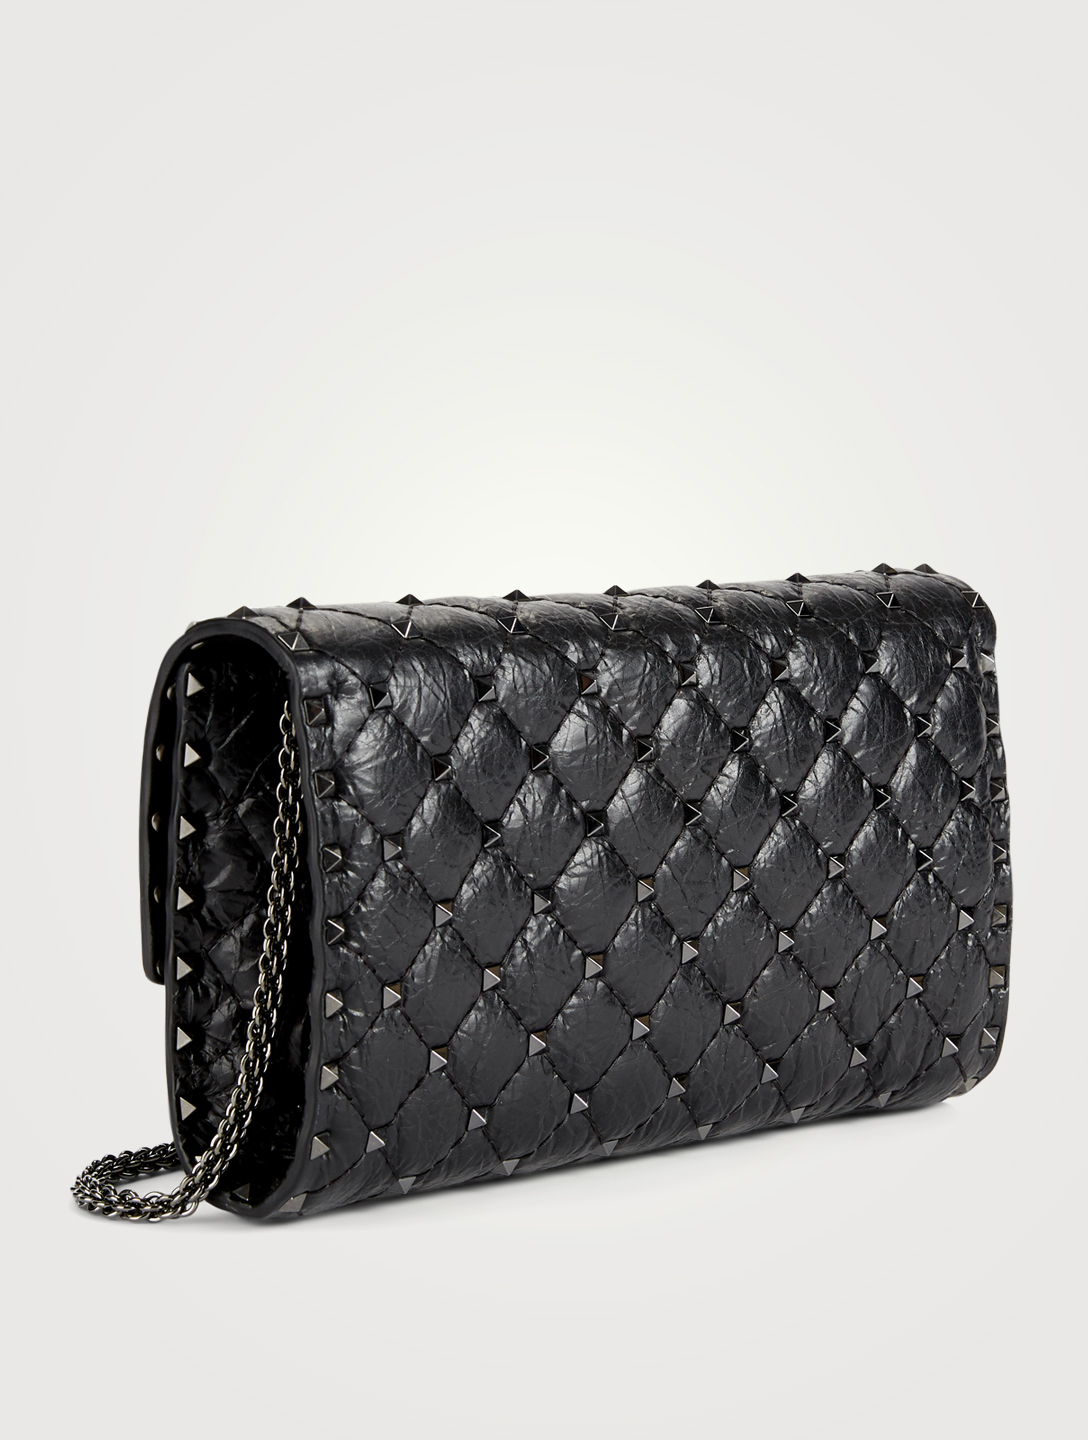 57a2c54b9d VALENTINO GARAVANI Rockstud Spike Cracked Leather Clutch Bag | Holt ...